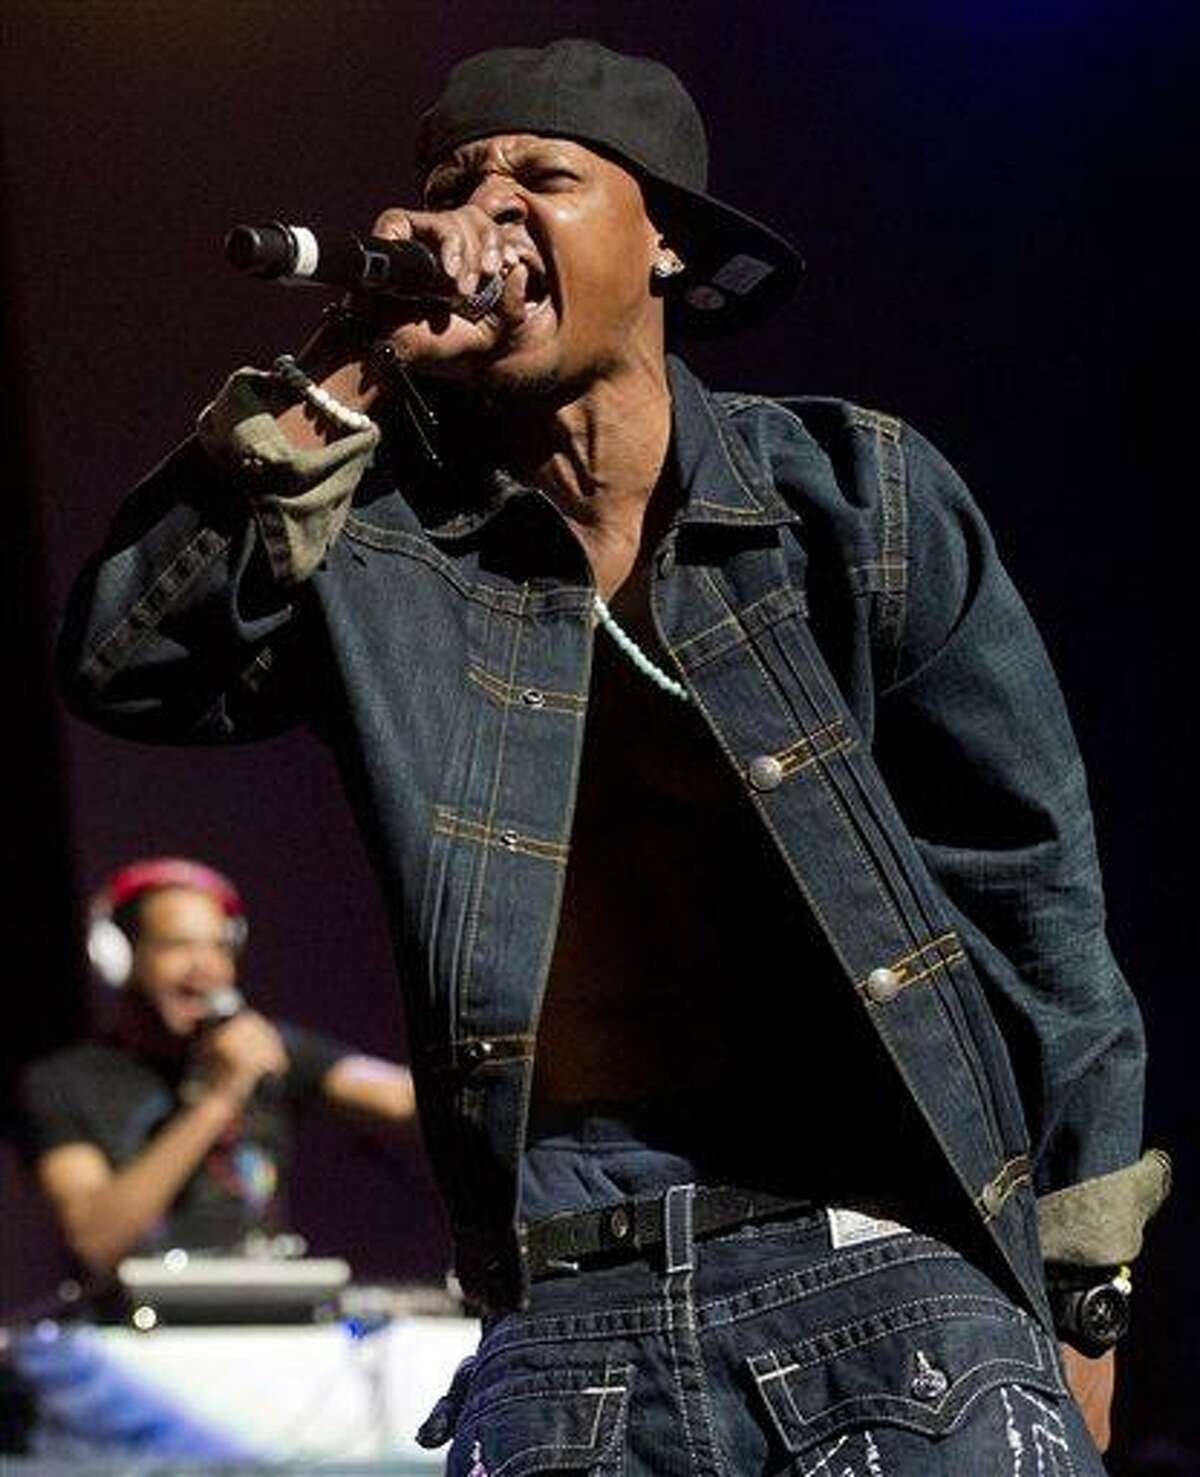 In this Feb. 23, 2013 photo, Chris Kelly of Kris Kross performs on stage at the Fox Theatre in Atlanta during the So So Def 20th Anniversary Concert. Kelly, half of the 1990s kid rap duo Kris Kross who made one of the decade's most memorable songs with the frenetic